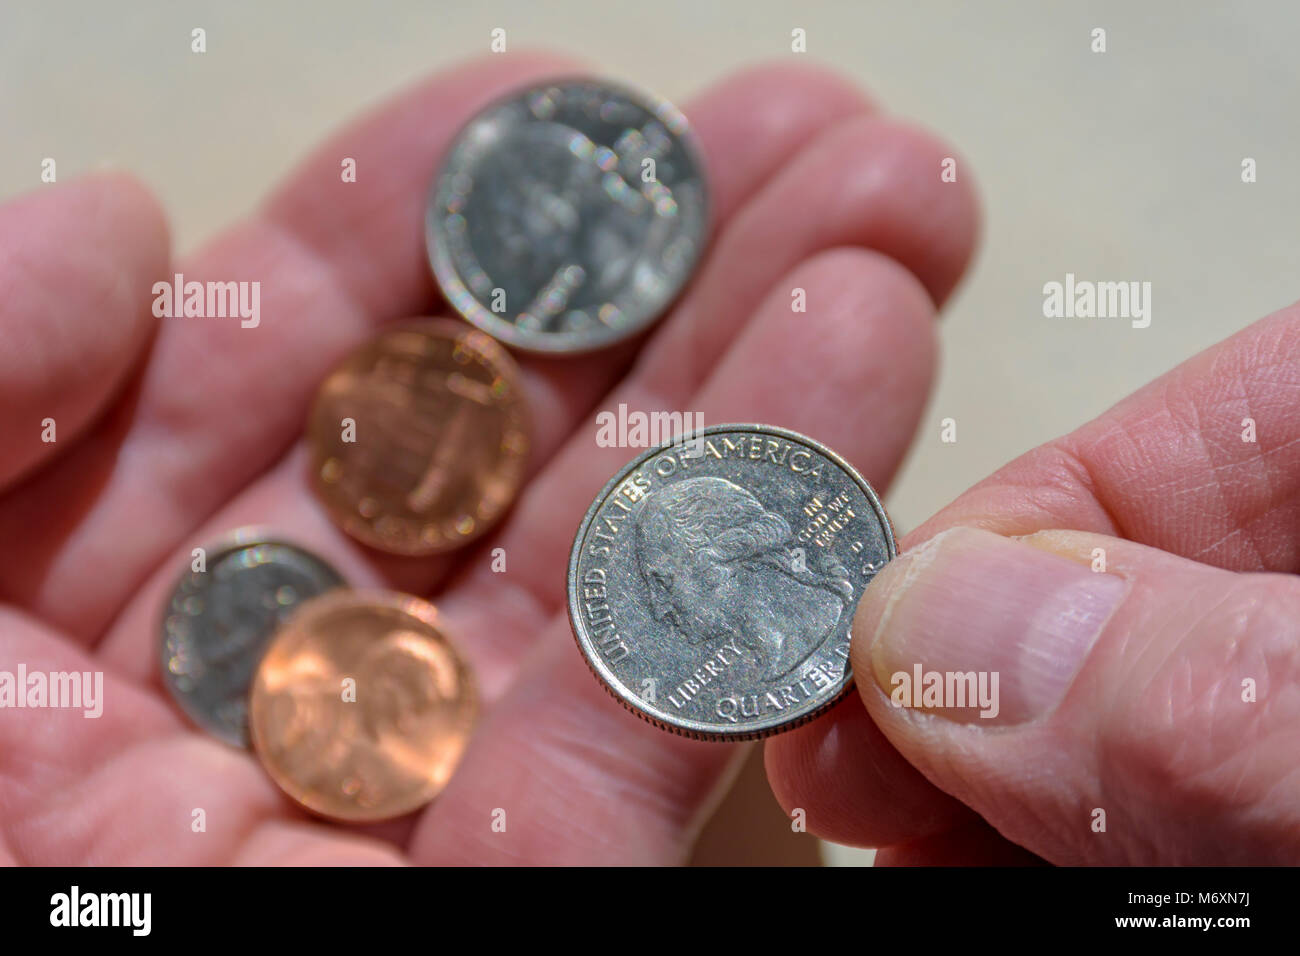 Dime Store Stock Photos Amp Dime Store Stock Images